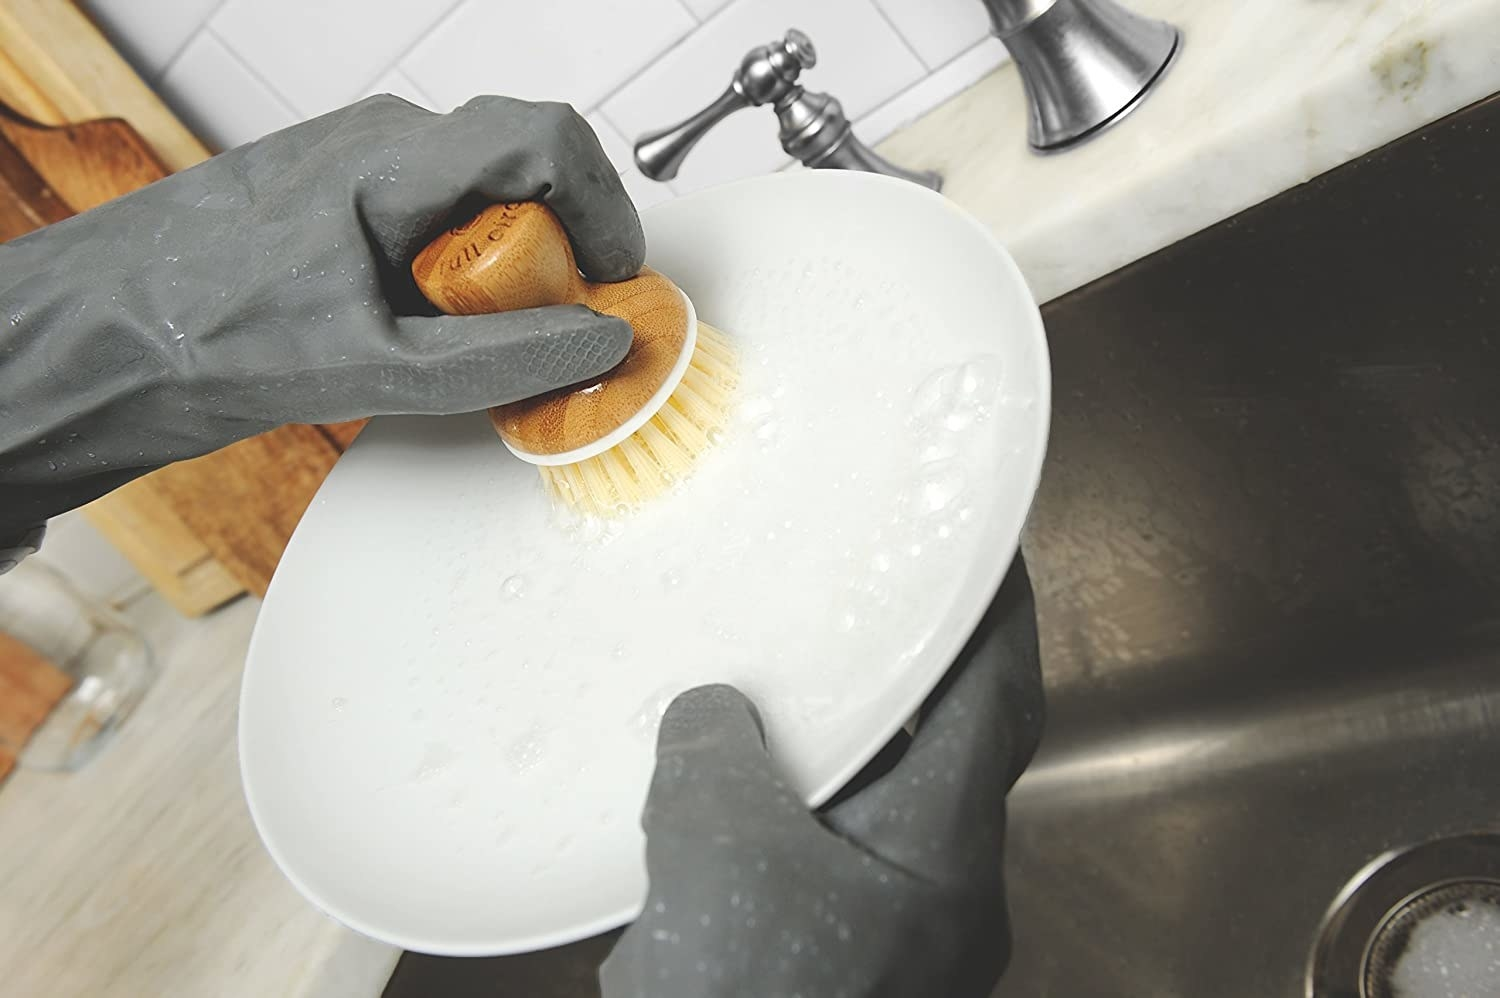 The bamboo-top brush being used to scrub a plate in the sink.